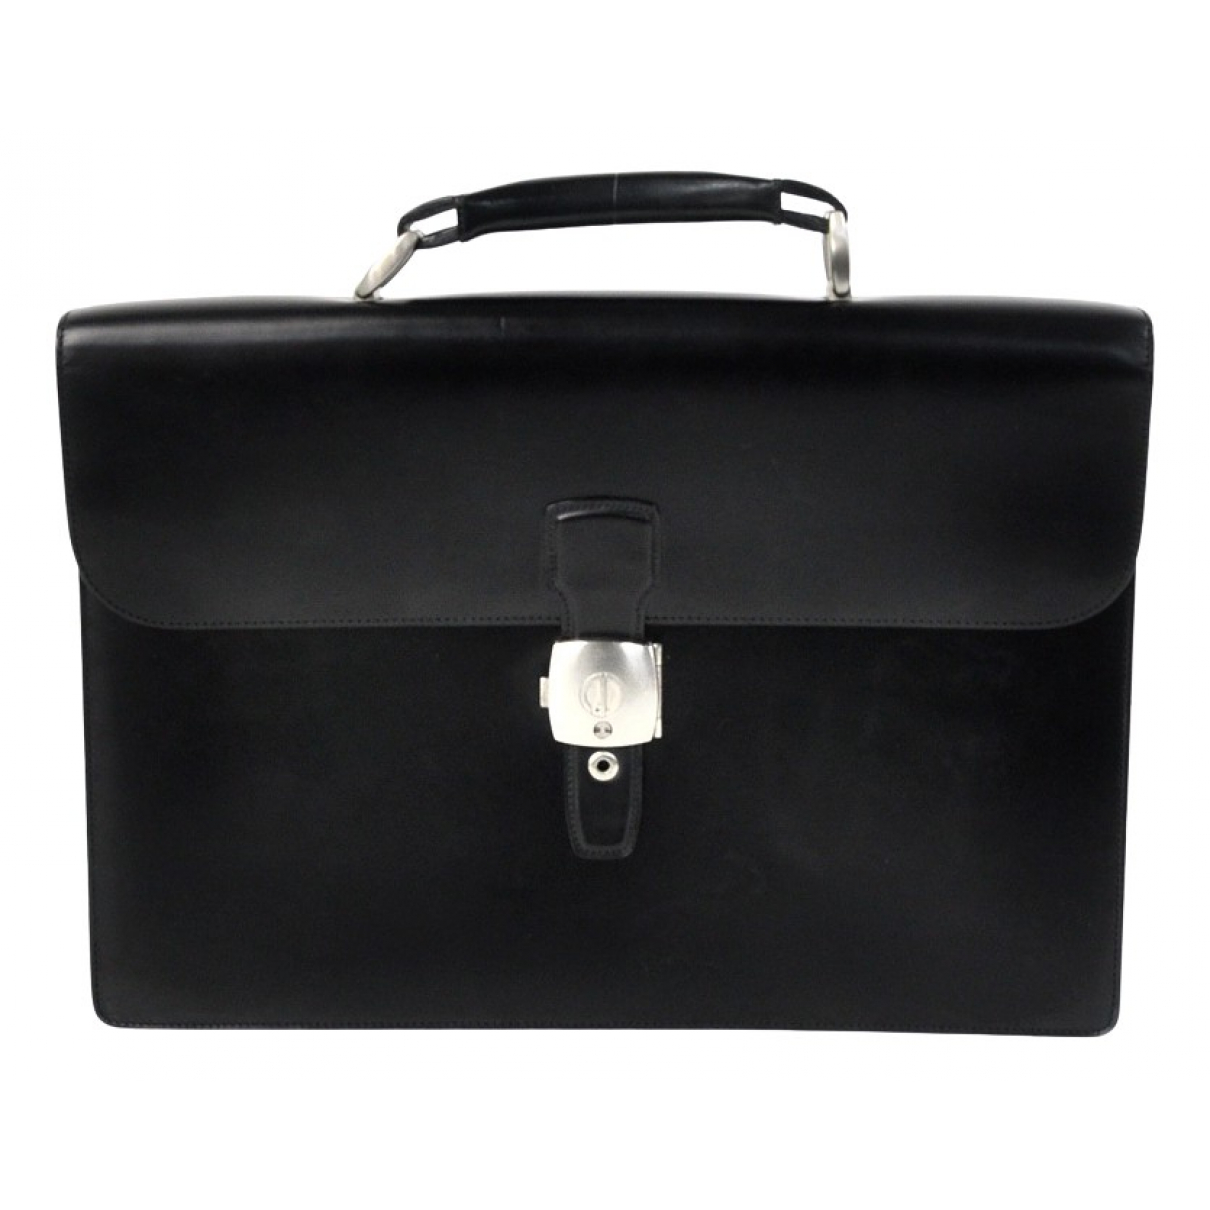 Alfred Dunhill \N Black Leather bag for Men \N